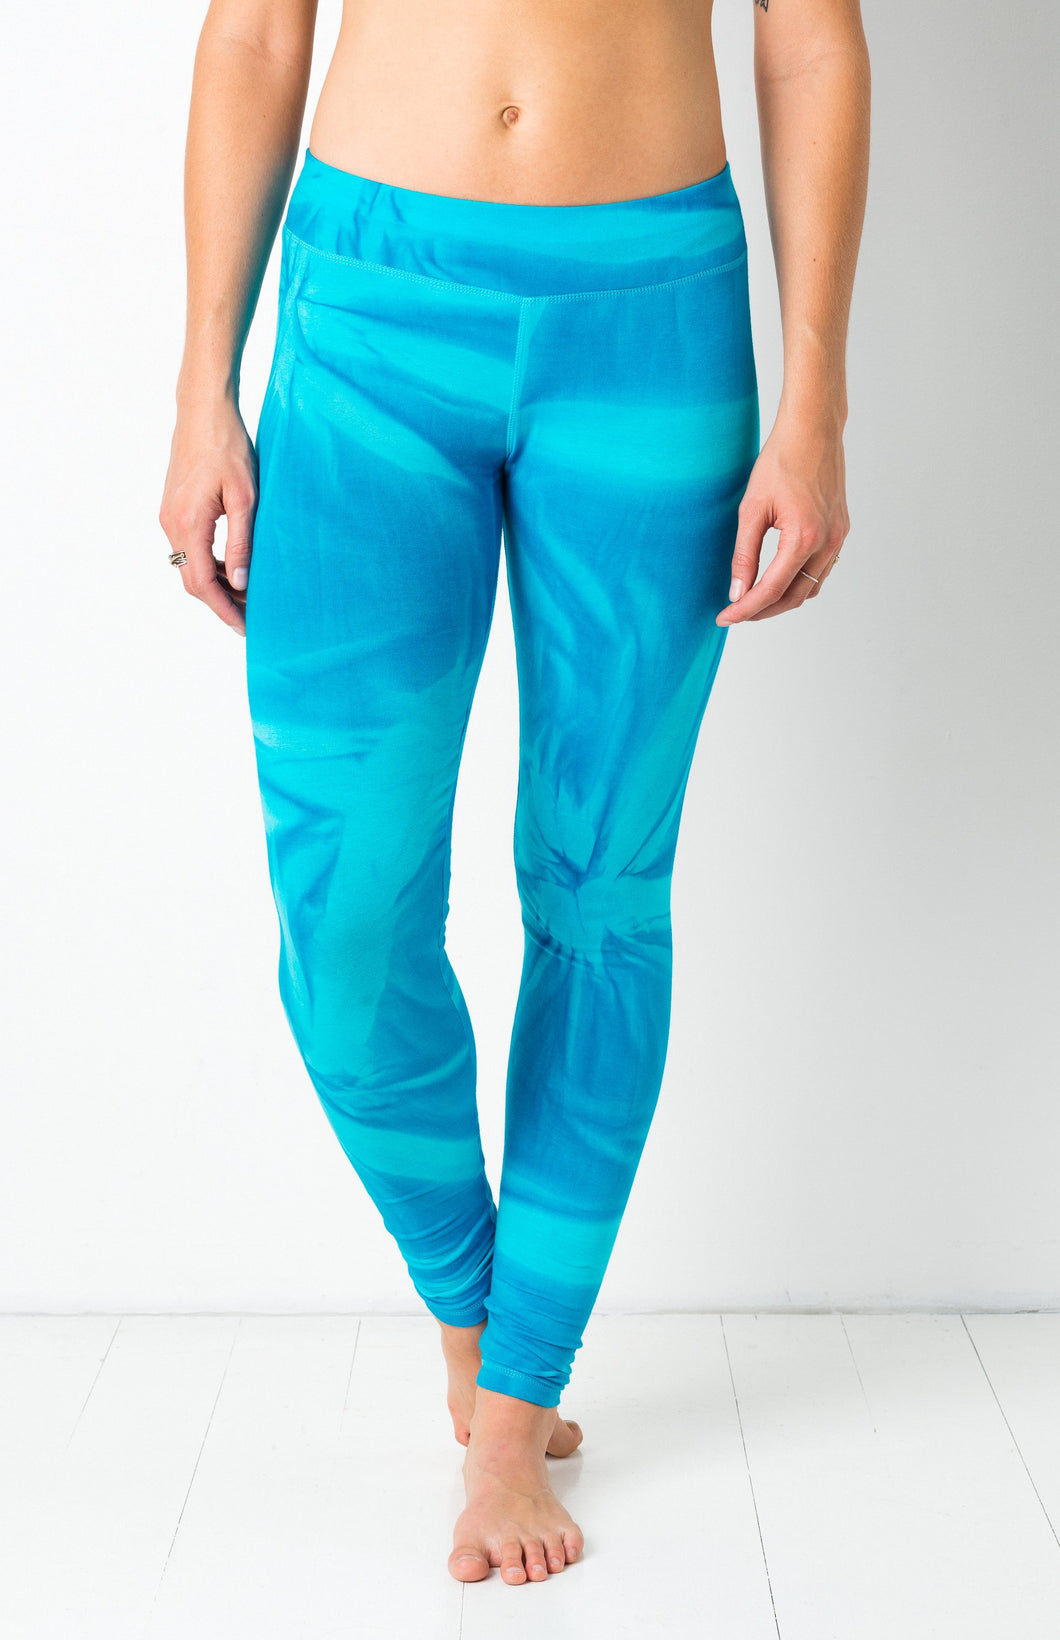 Thin Lycra Turqoise Star Leggings- yoga pants